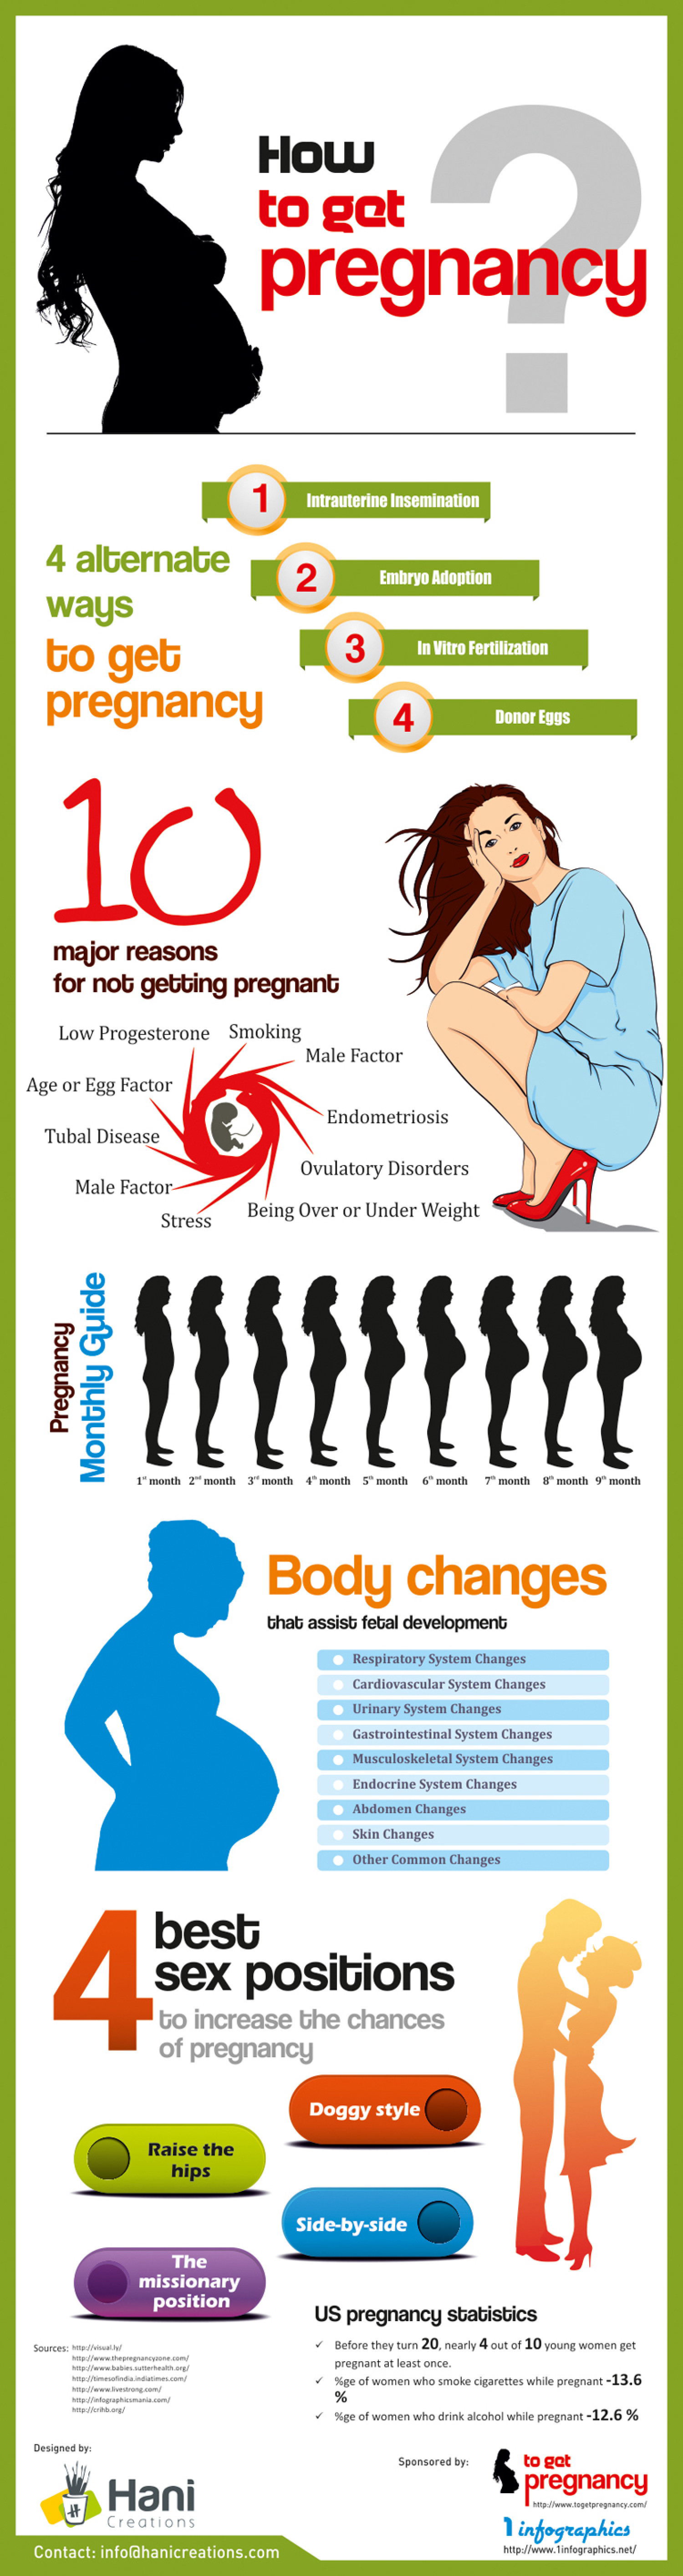 How to Get Pregnancy Infographic